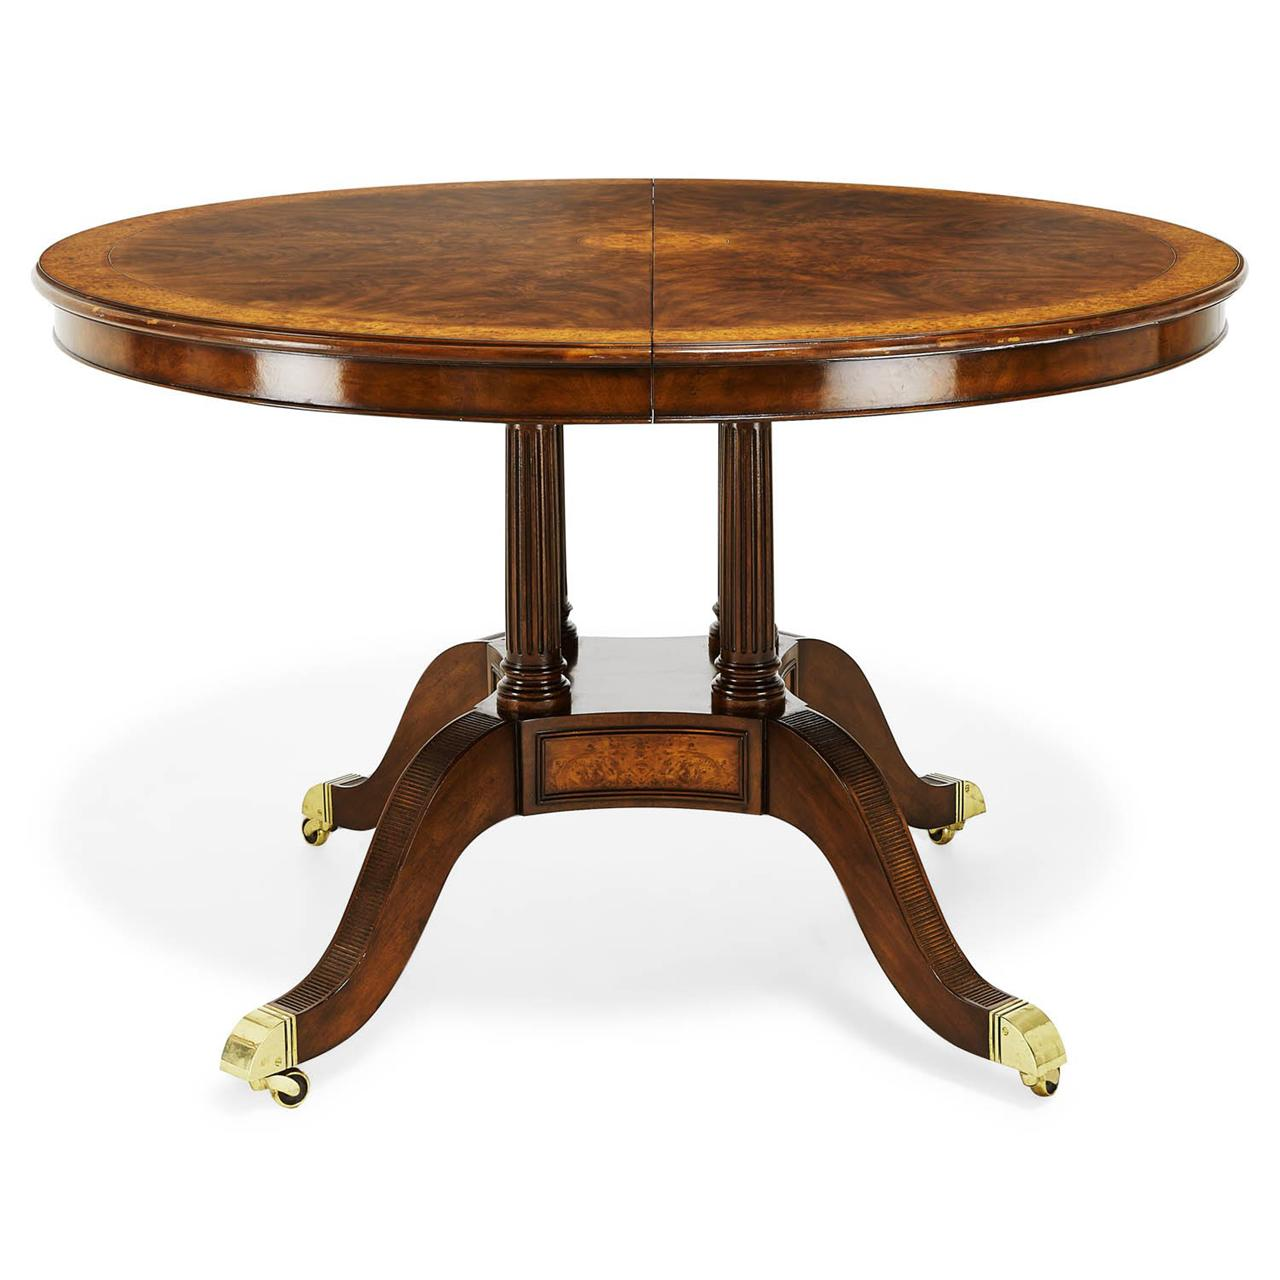 48 inch round to oval walnut and yew banded dining table for Circle table